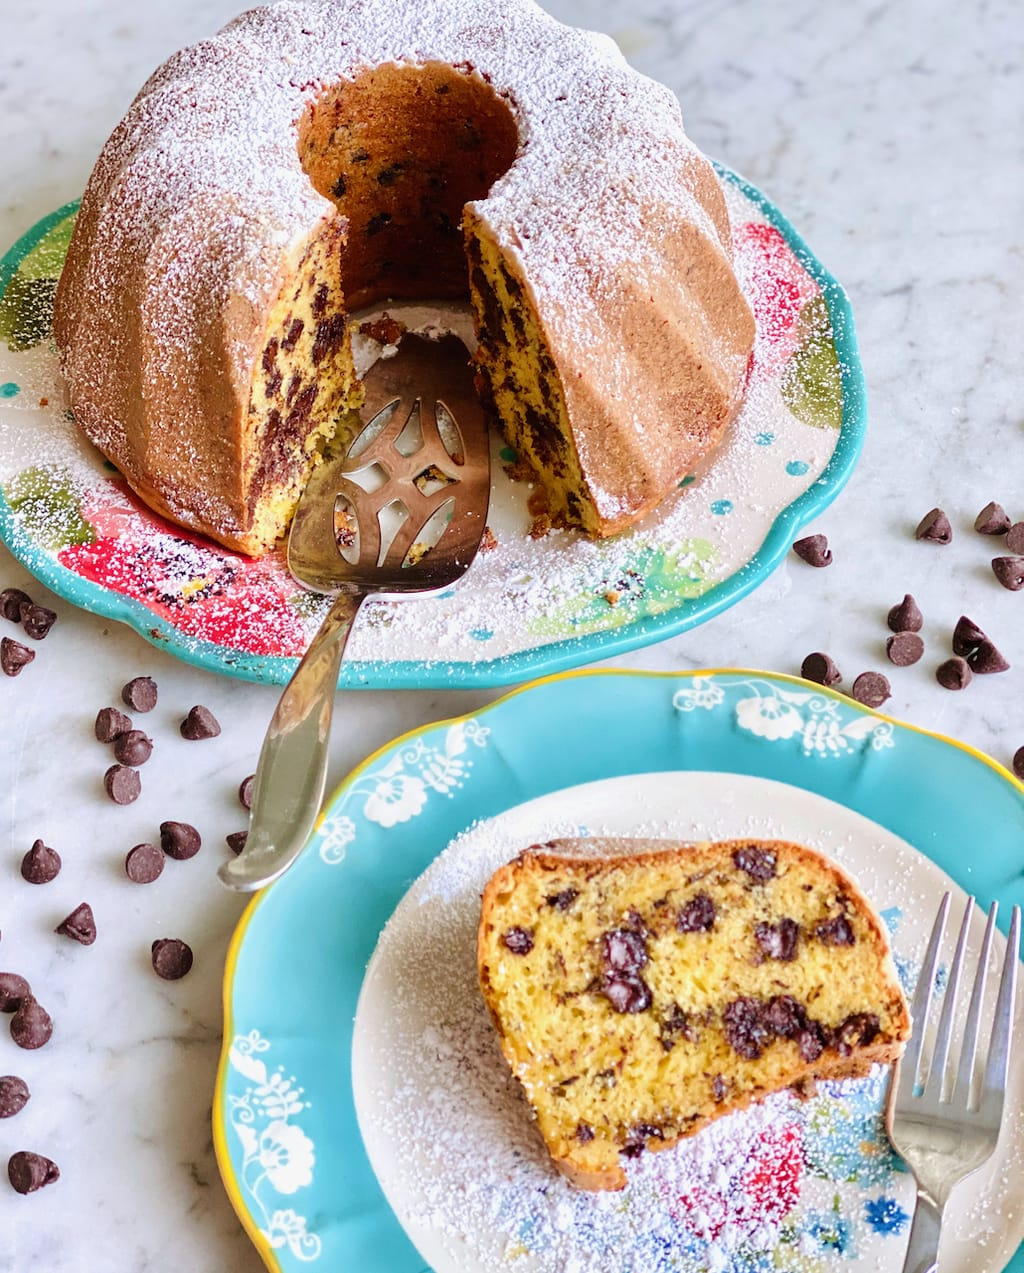 slice of chocolate chip cake on a plate in front of whole cake